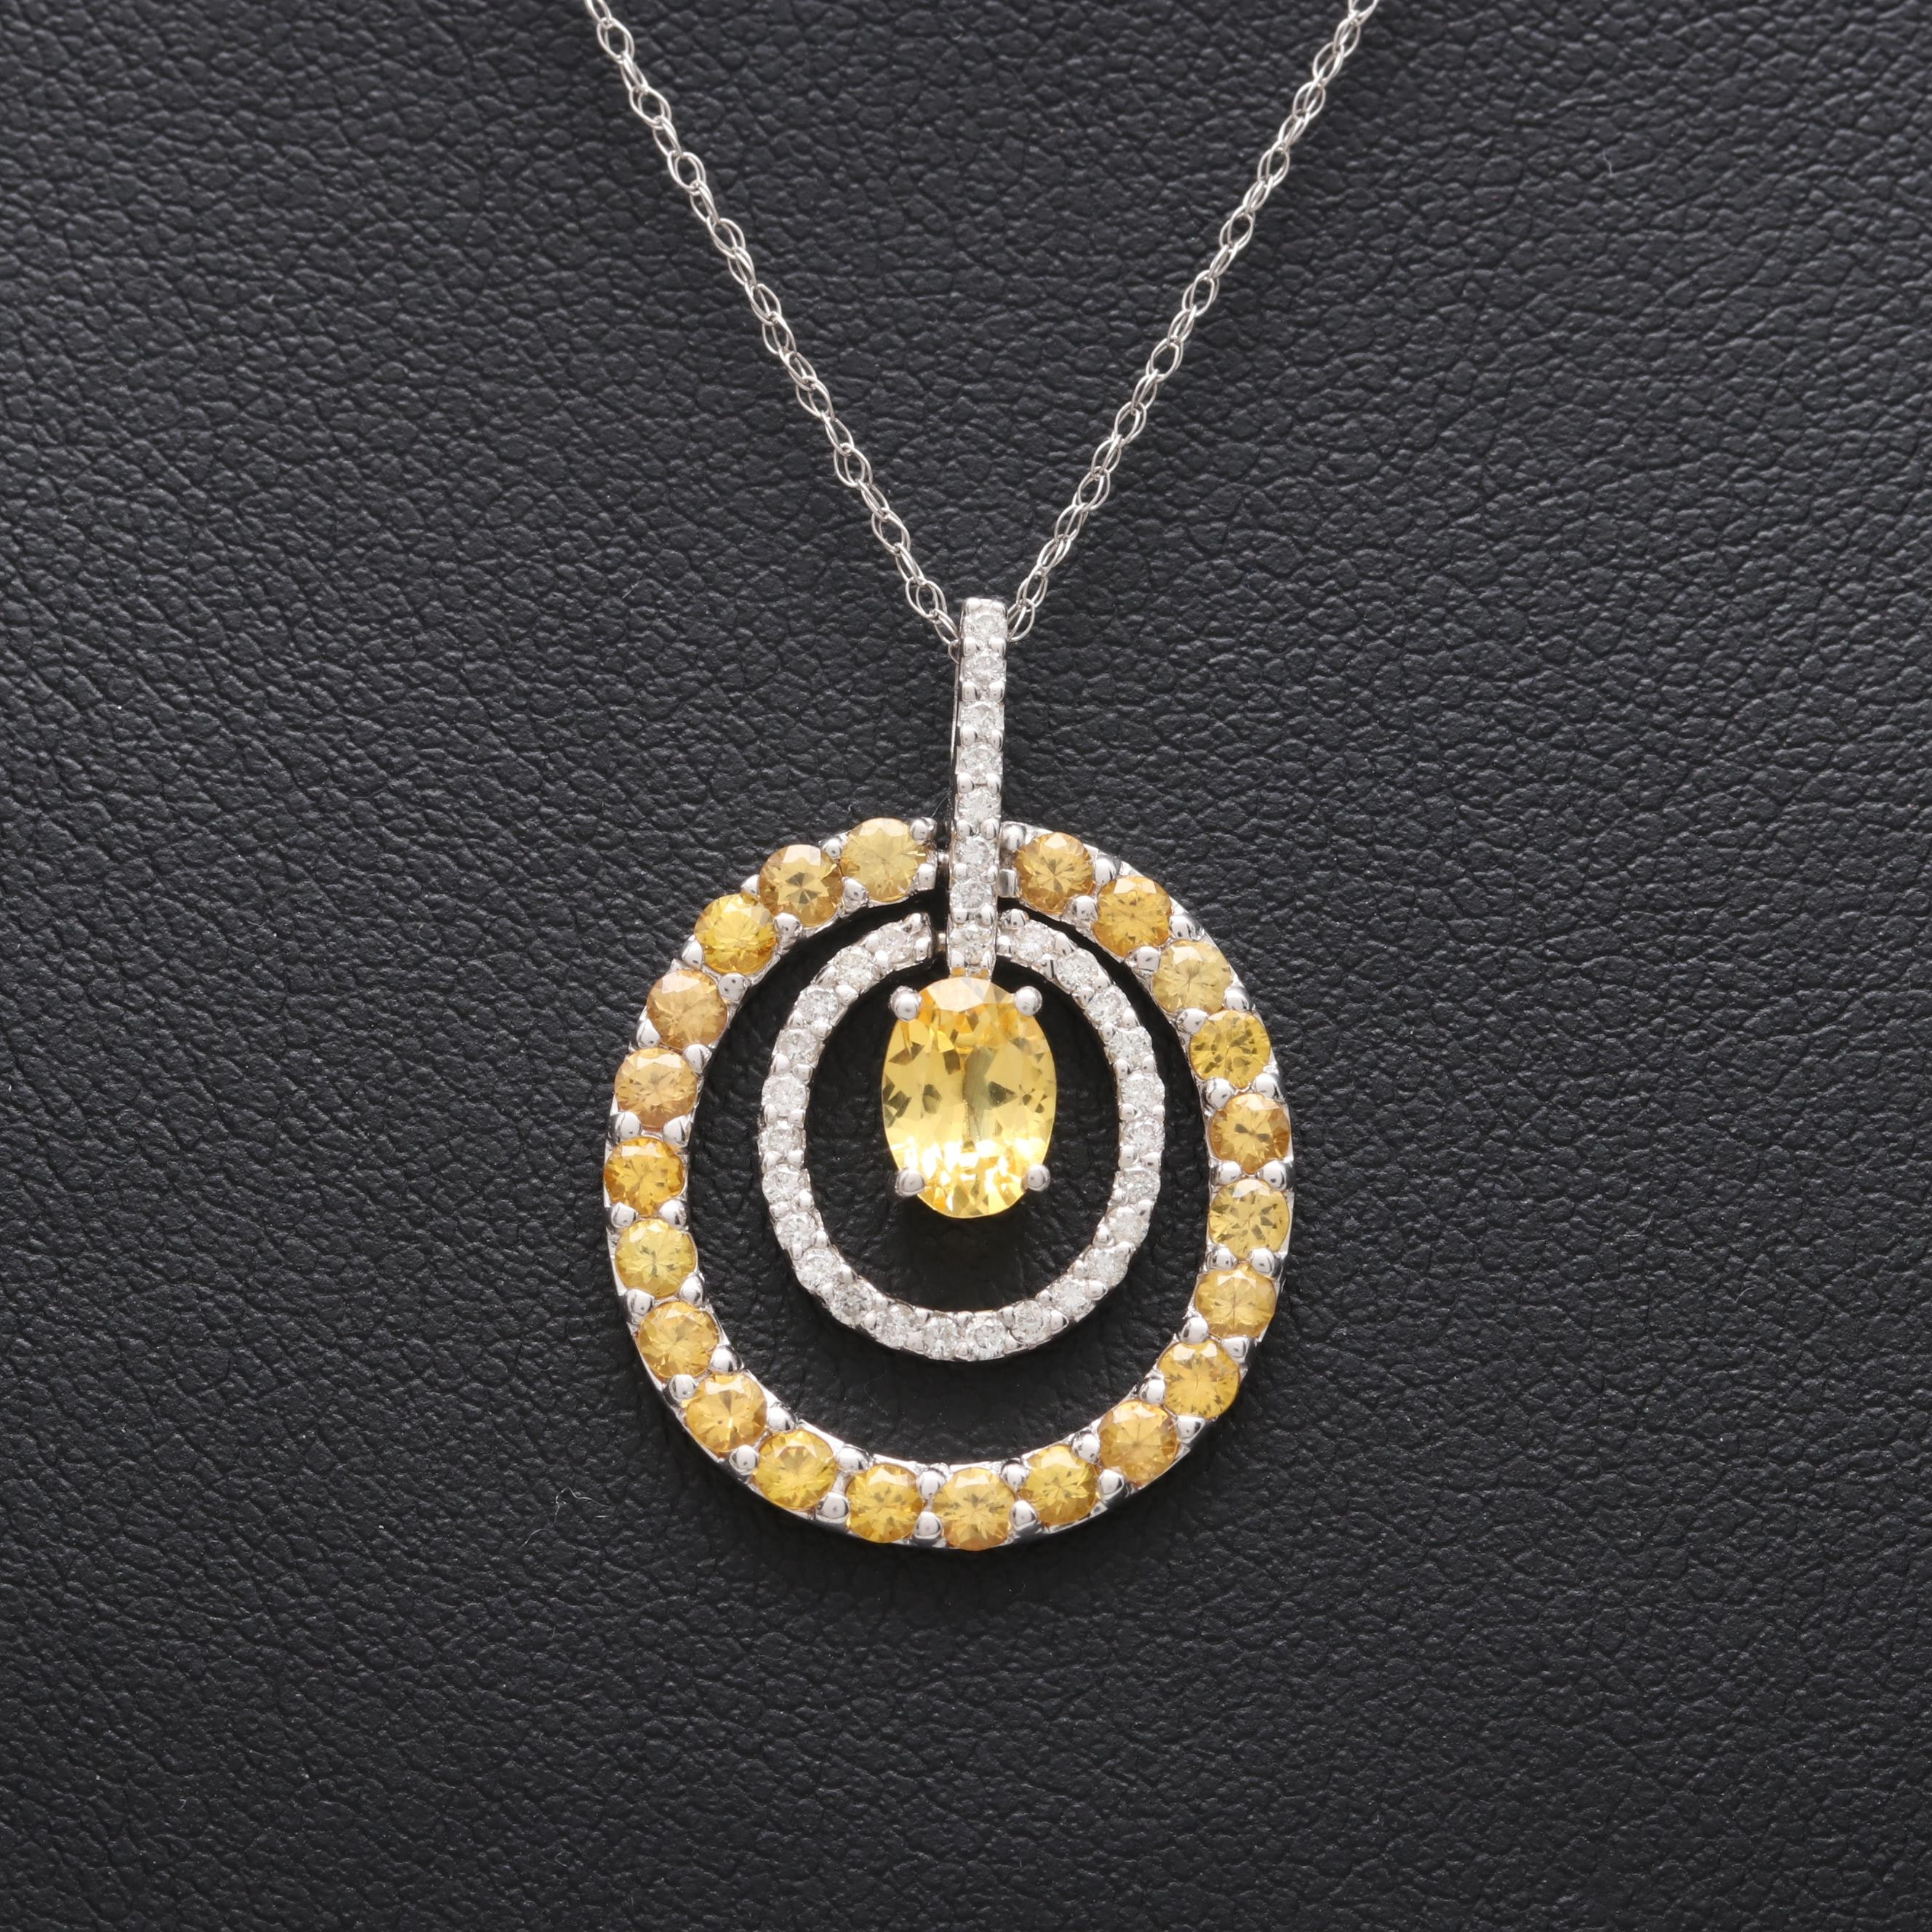 14K White Gold Yellow Sapphire and Diamond Necklace